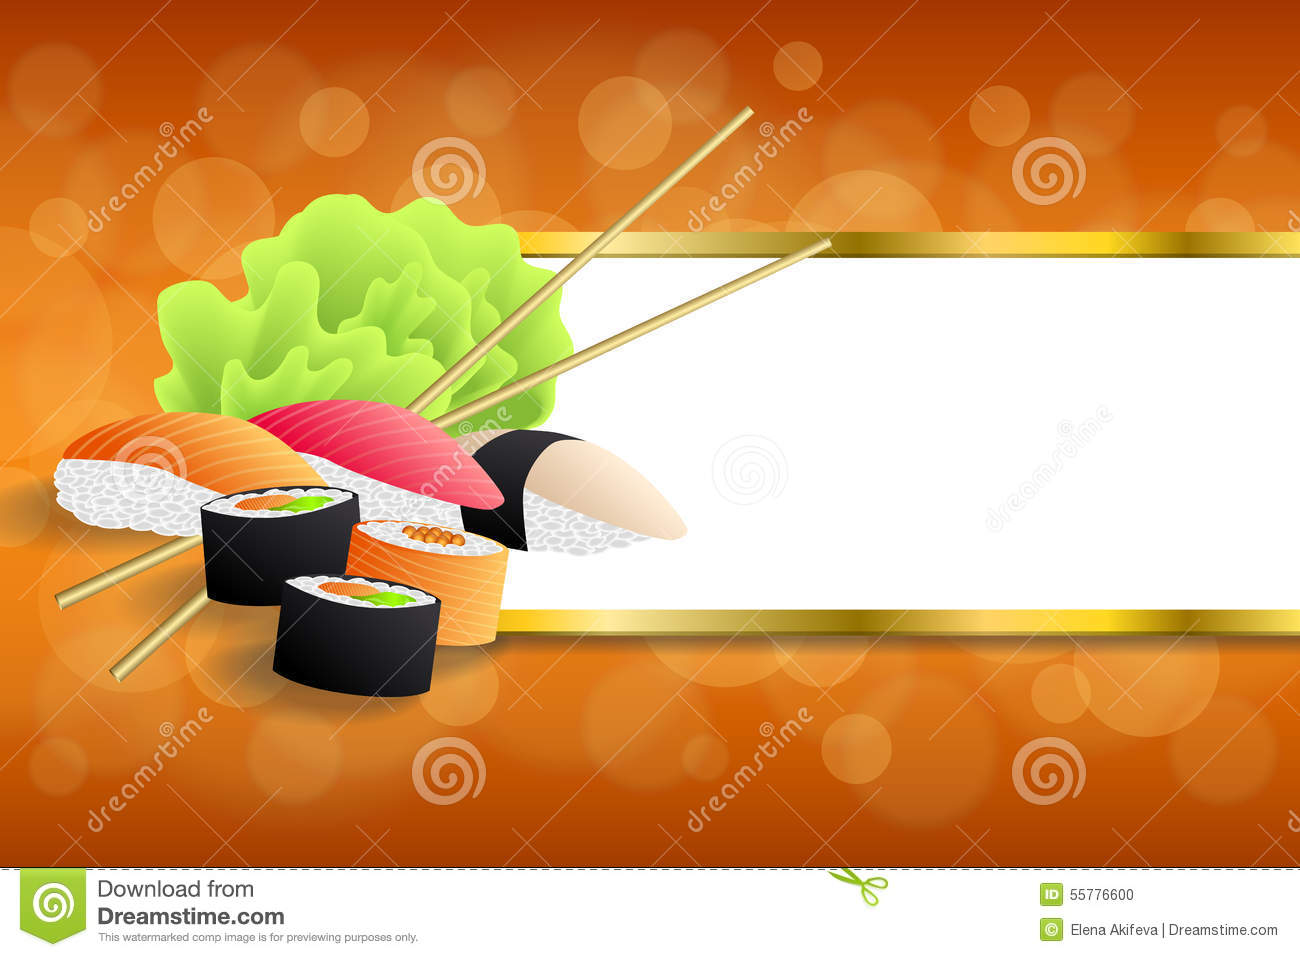 Background Abstract Food Sushi Orange Yellow Green Stripes Gold.